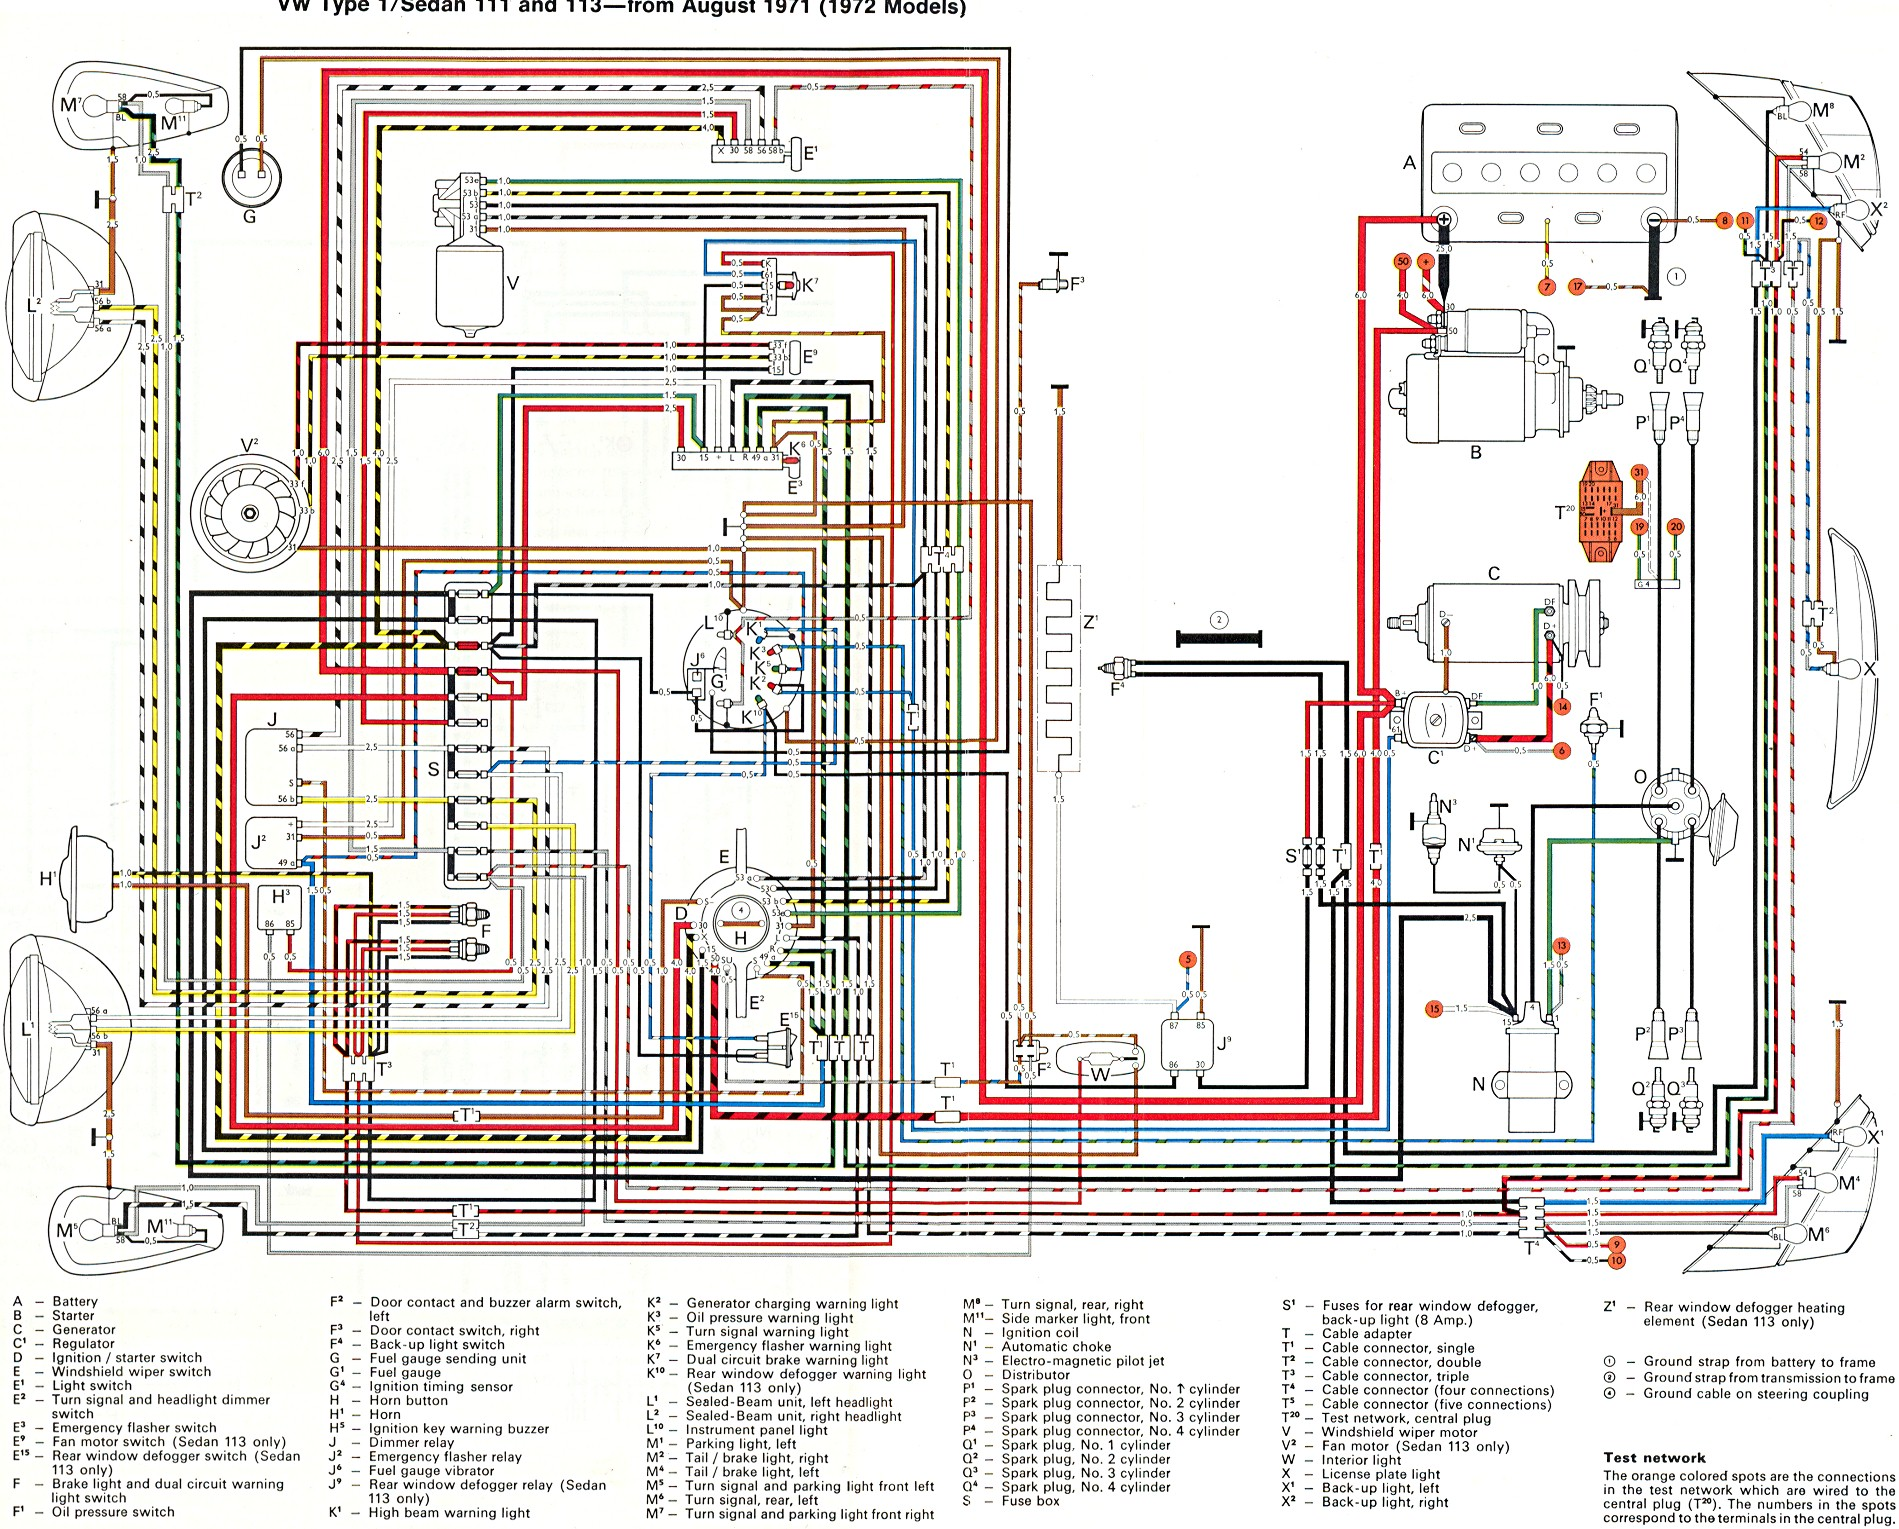 bug_std_super_72 2001 vw beetle wiring diagram 1964 vw beetle wiring diagram 2002 vw beetle wiring diagram at fashall.co